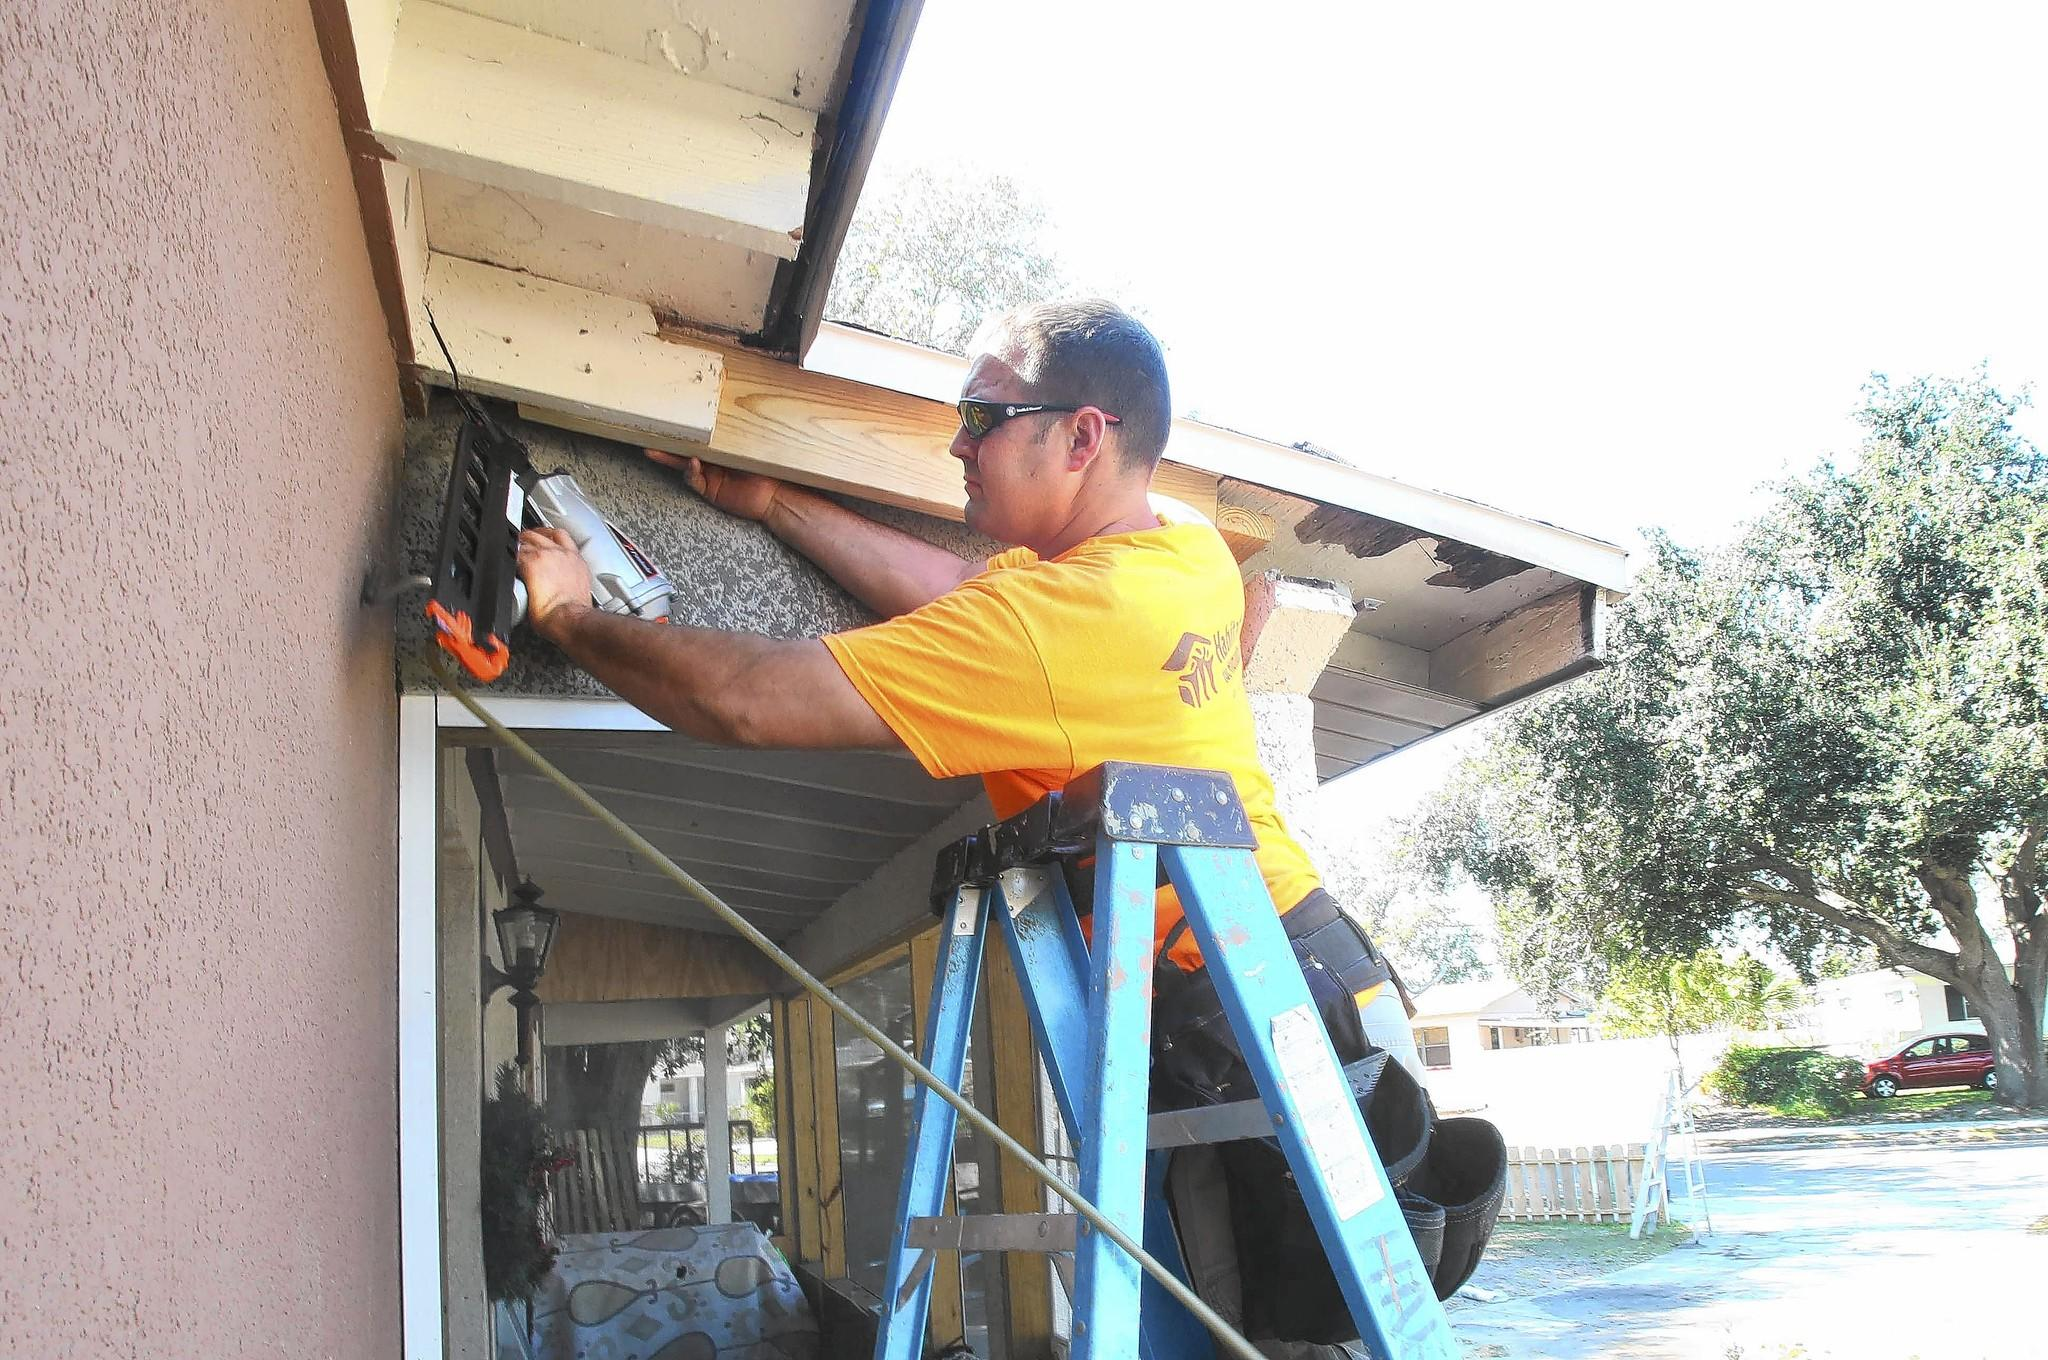 Mark Myrick from Habitat for Humanity repairs eaves on a house in Pine Hills ahead of the volunteers who will do painting. Feb. 19, 2014 B583543568Z.1 George Skene/Orlando Sentinel